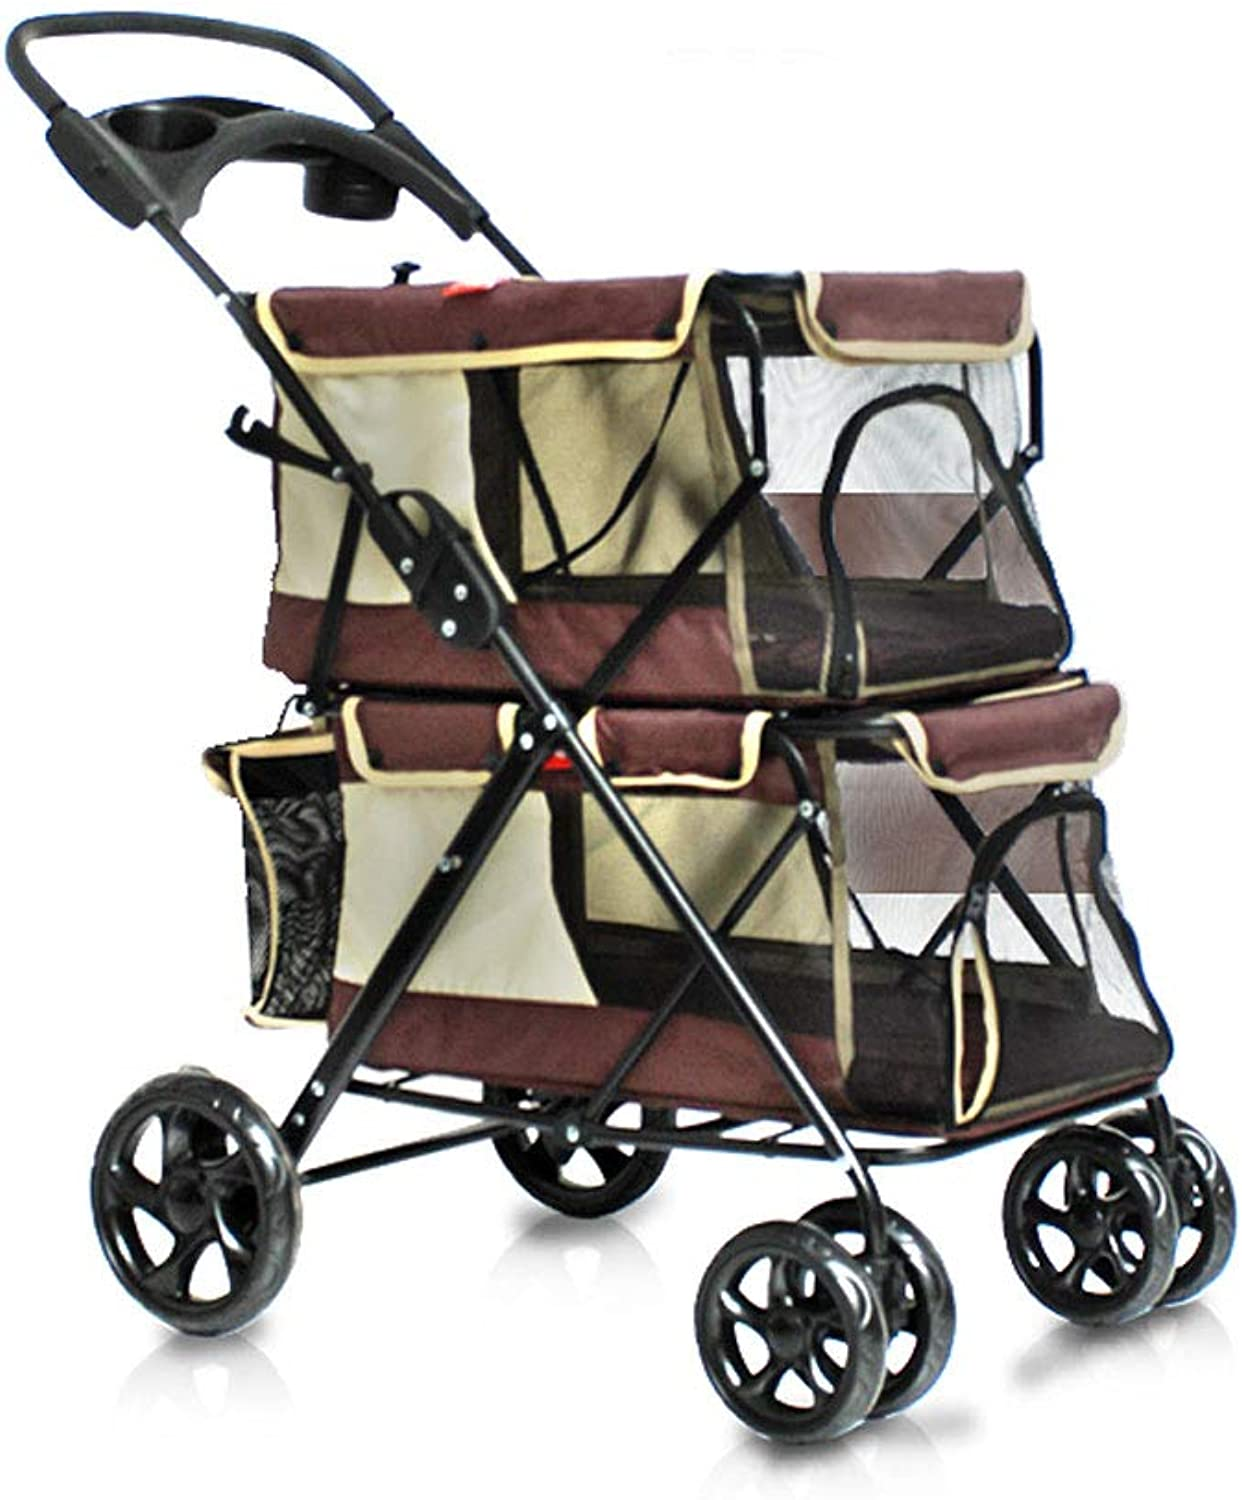 Puppy Cat Pet Travel Stroller Pet Trolley Pushchair Rear Brakes Maximum Load 20kg (color   BROWN)